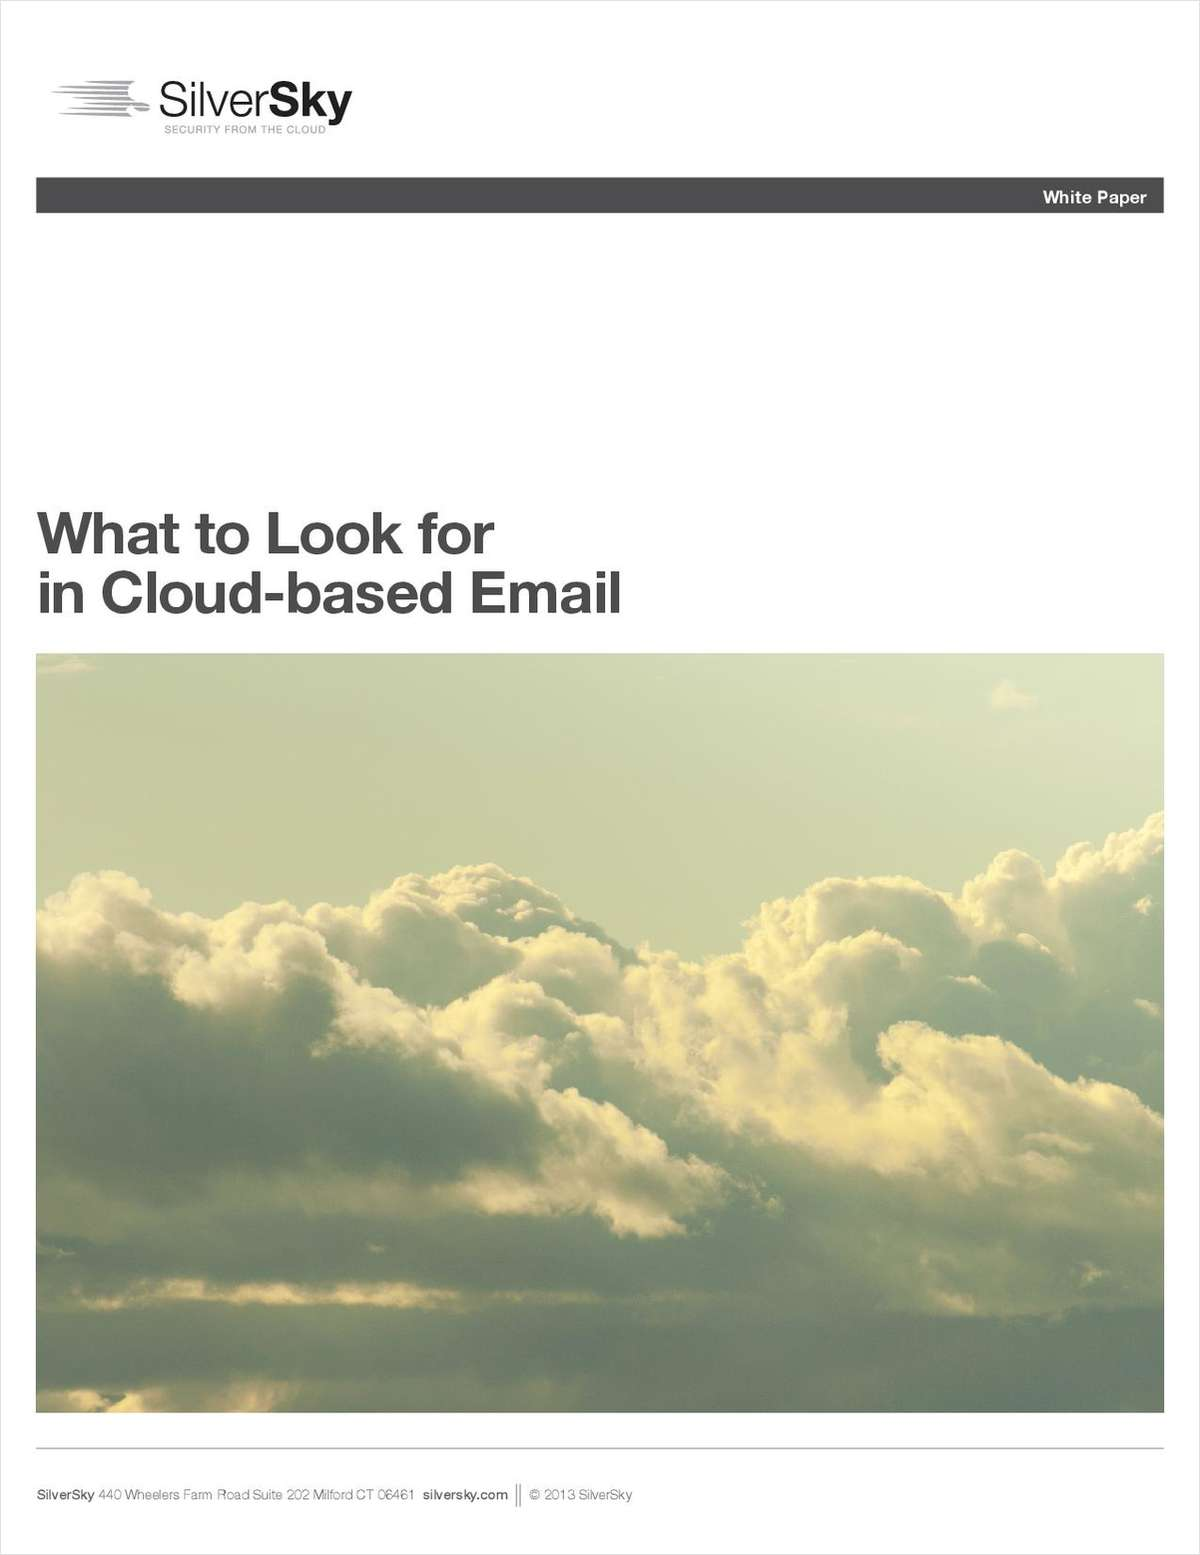 What Companies Need to Look for in Cloud-based Email